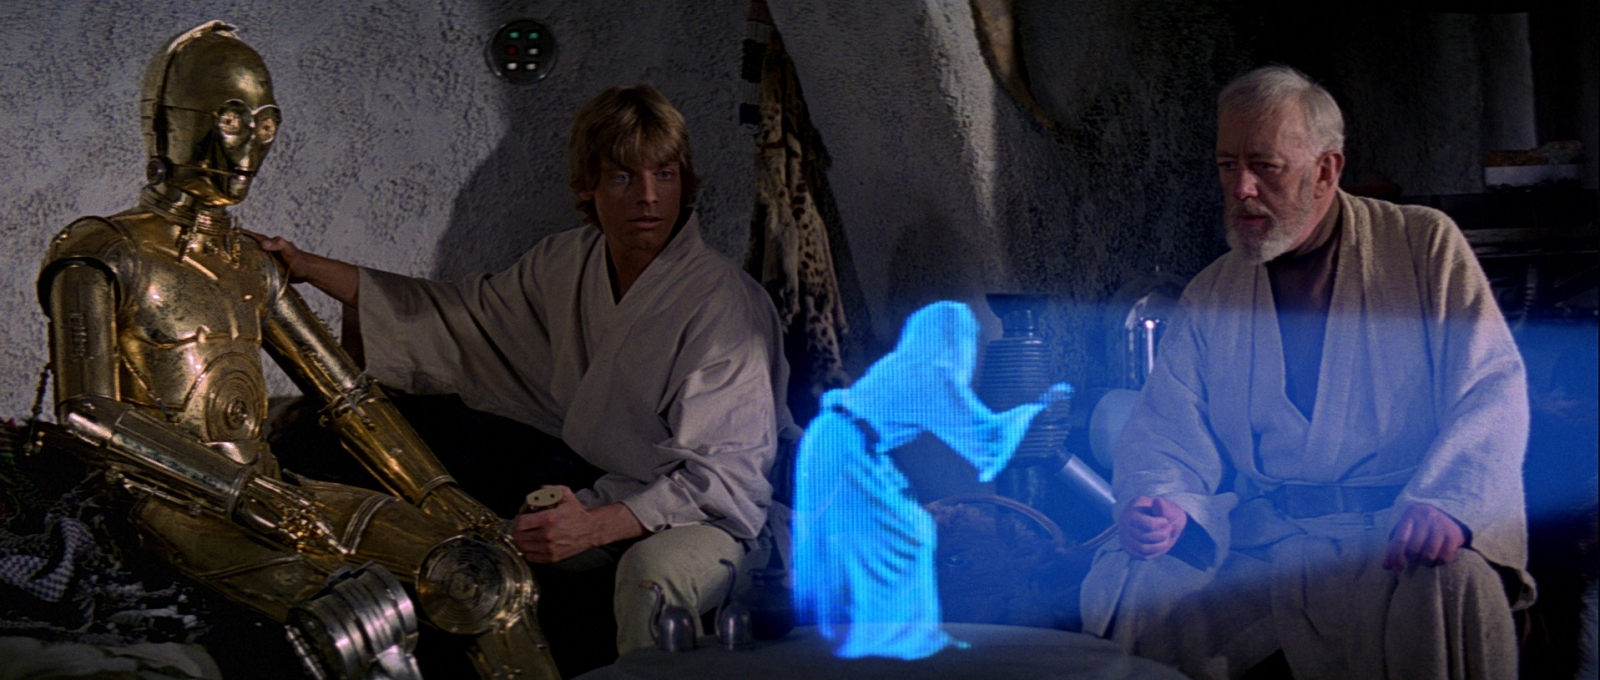 Star Wars 3d Holograms Now Possible With Screens Made From Graphene Next Generation Holographic Displays And Lasers